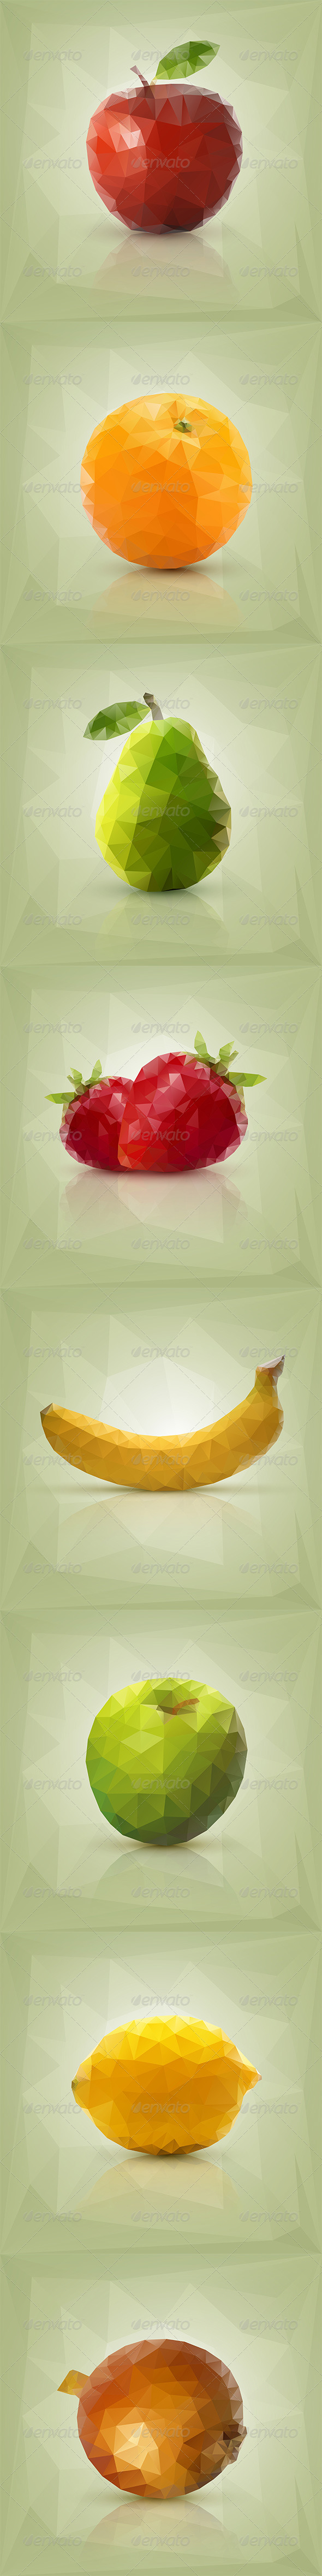 GraphicRiver Triangle Polygon Fruit Illustrations 6678716